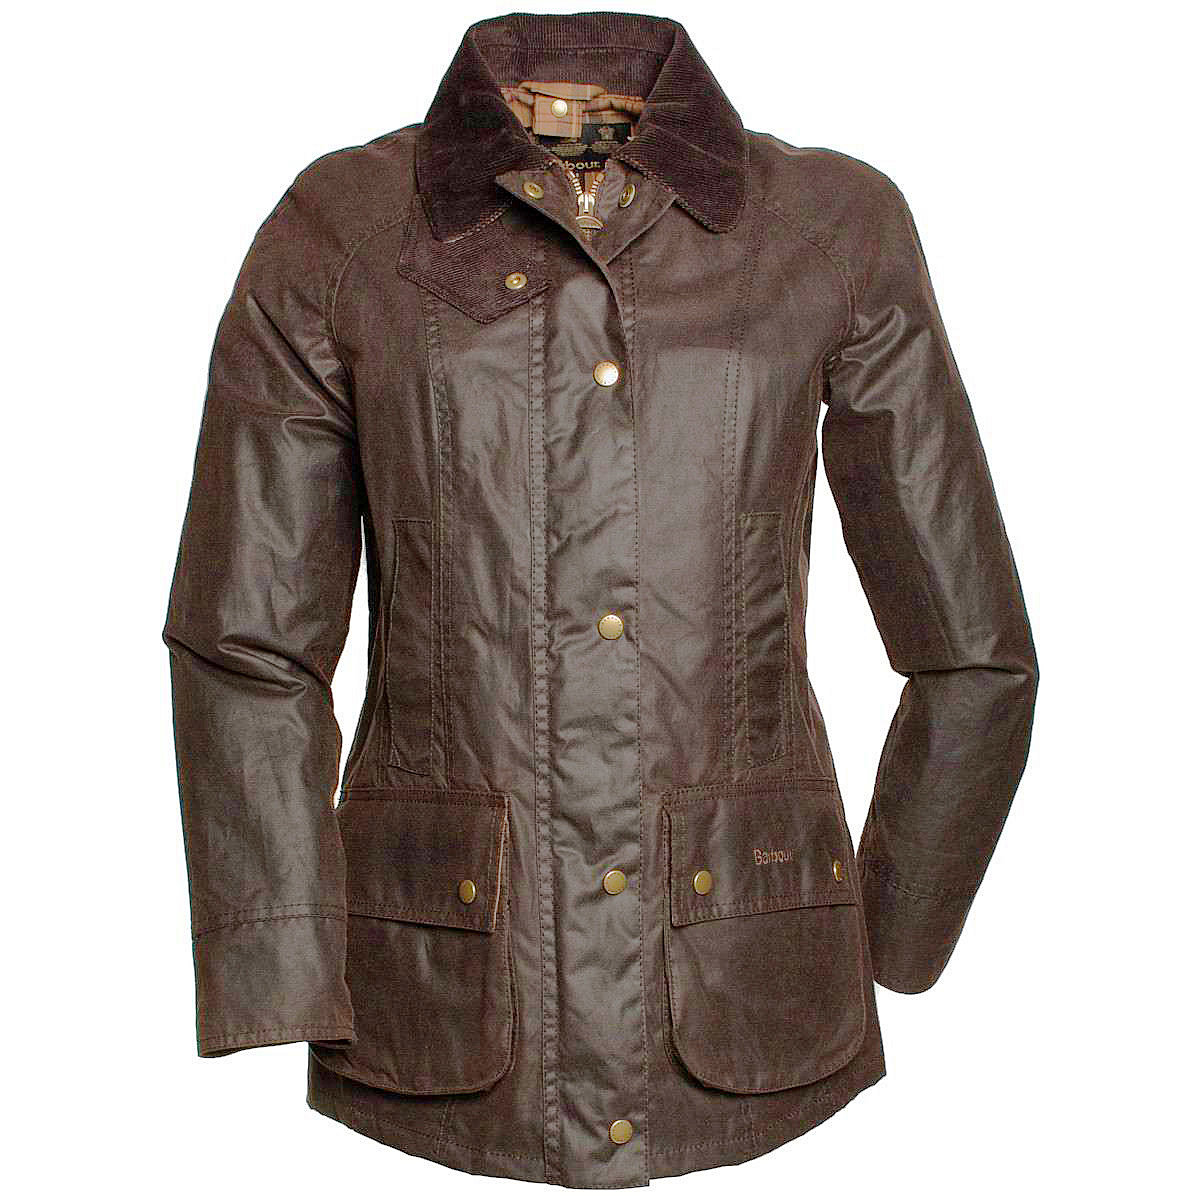 Barbour Beadnell Jacket - Damenwachsjacke